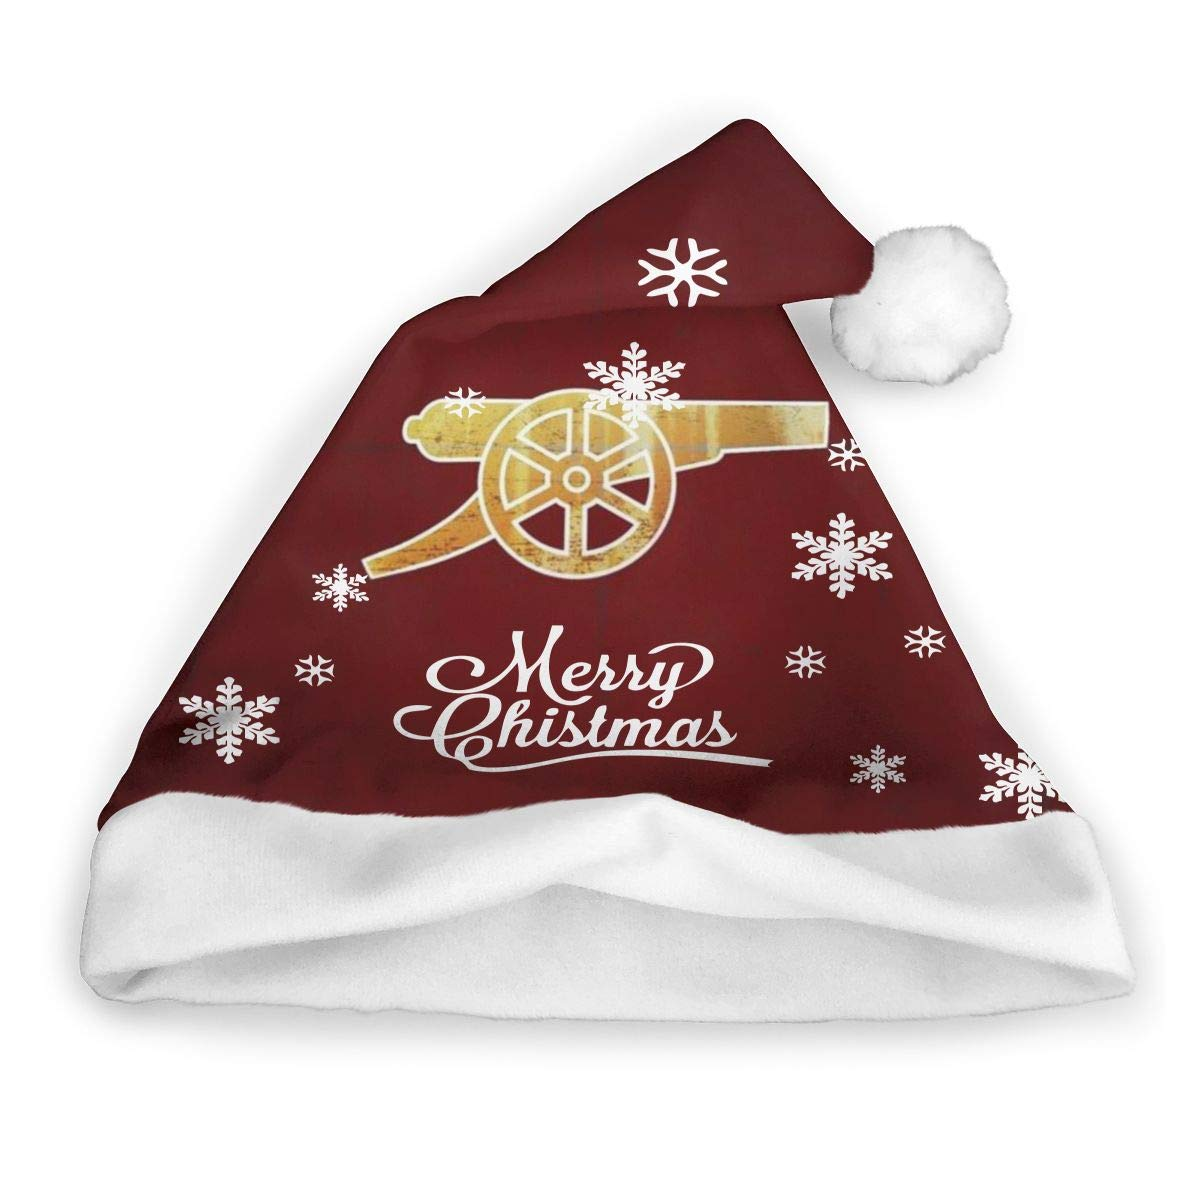 Plaid Red and Black Funny Christmas Santa Hat Novelty Xmas Holiday Hats for Adults and Kids